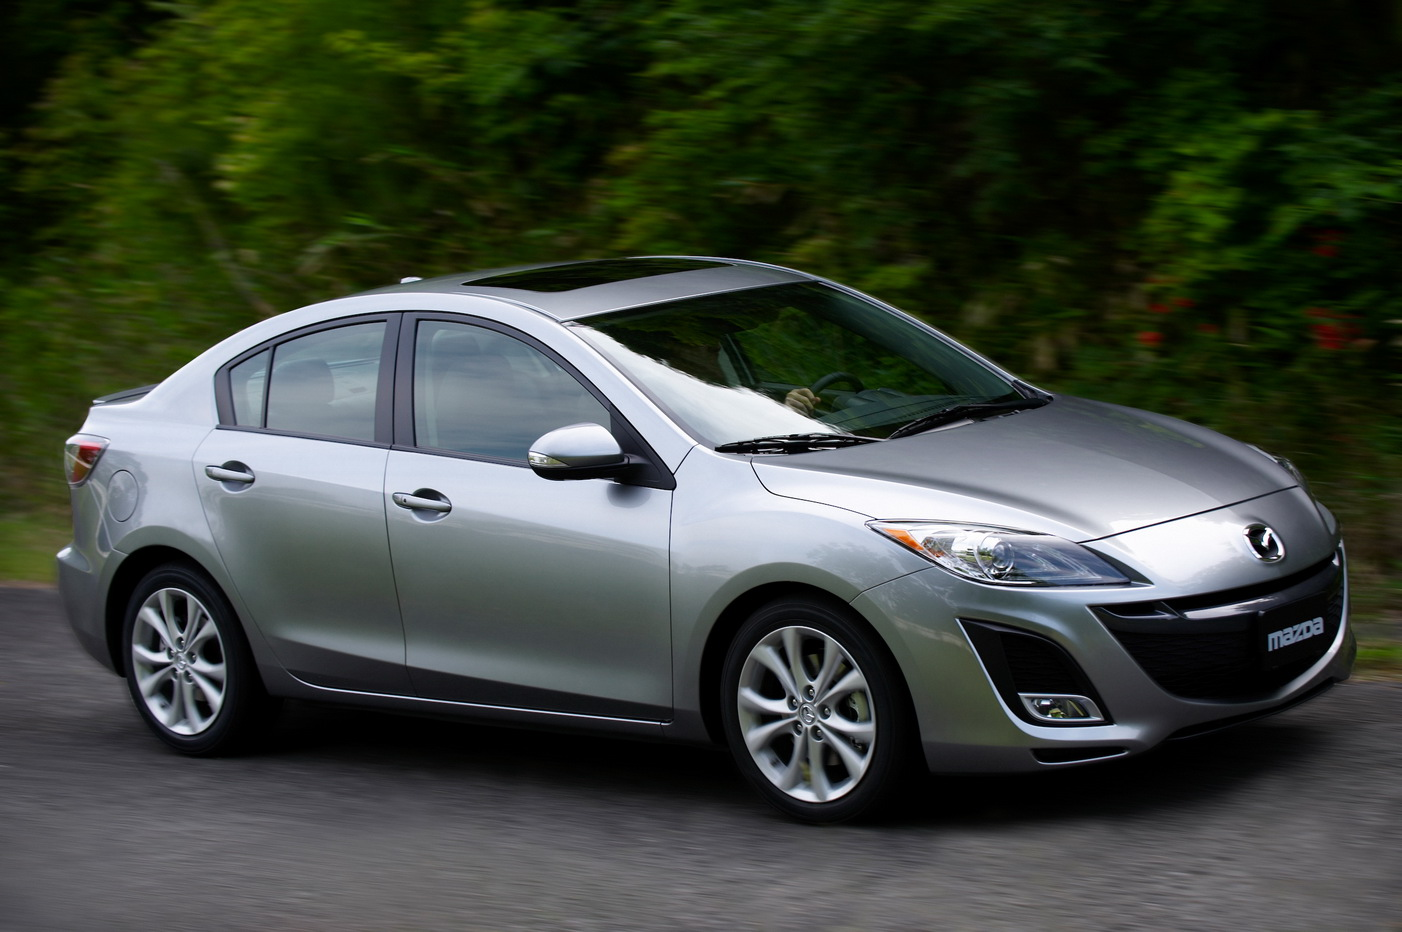 all new 2010 mazda3 revealed at the la 2008 photo video it s your auto world new cars. Black Bedroom Furniture Sets. Home Design Ideas